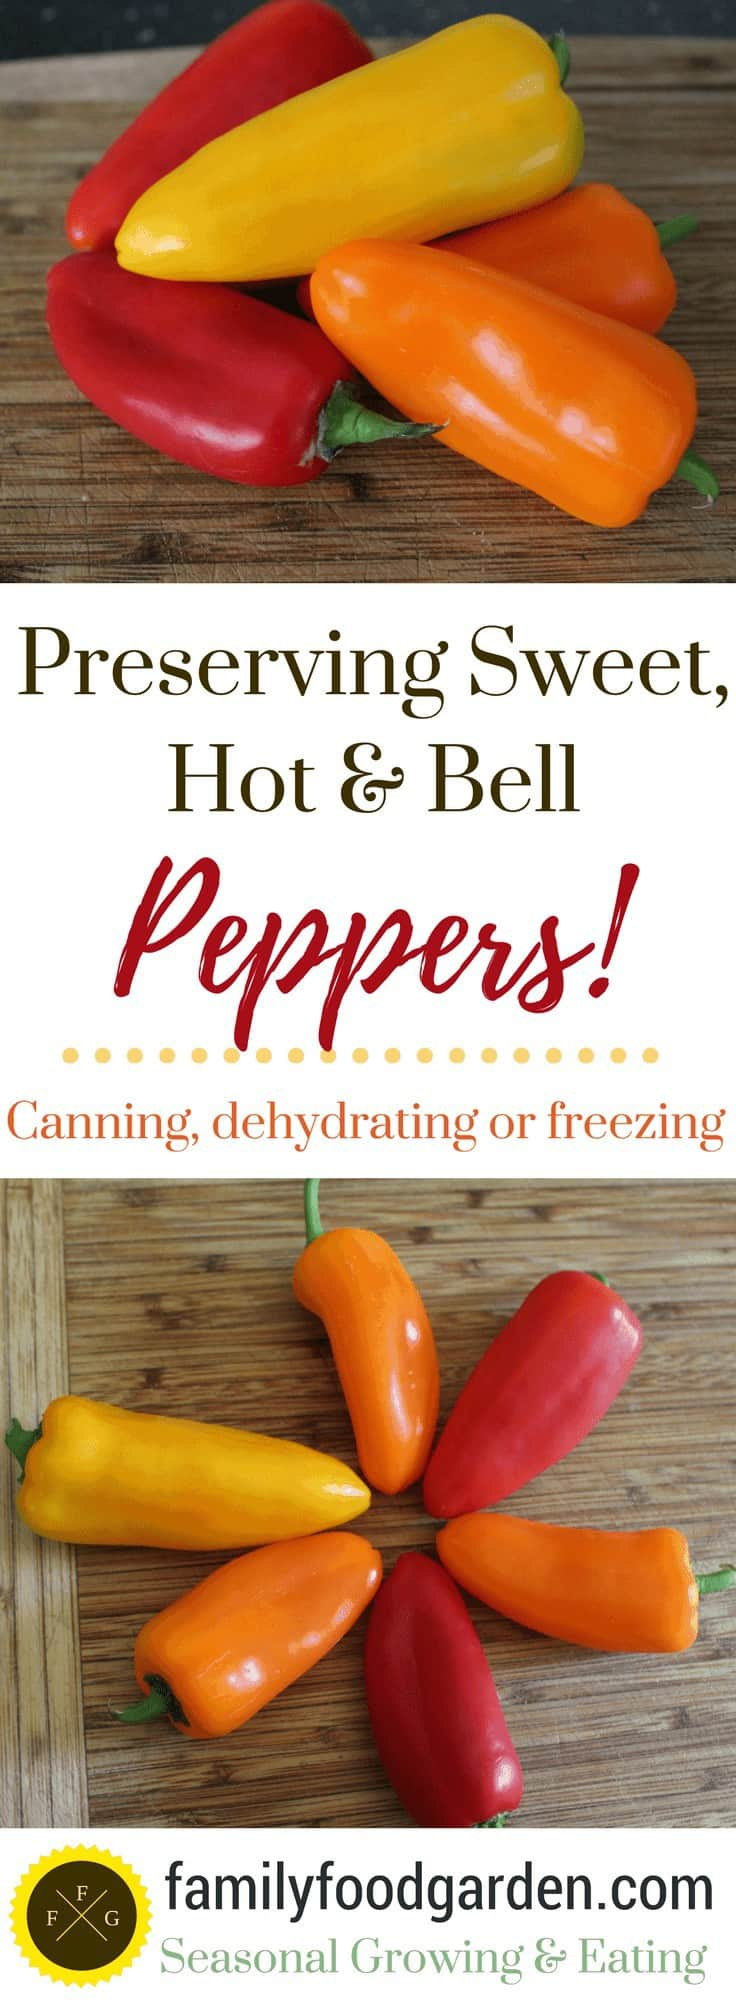 How to preserve peppers with canning, freezing or dehydrating